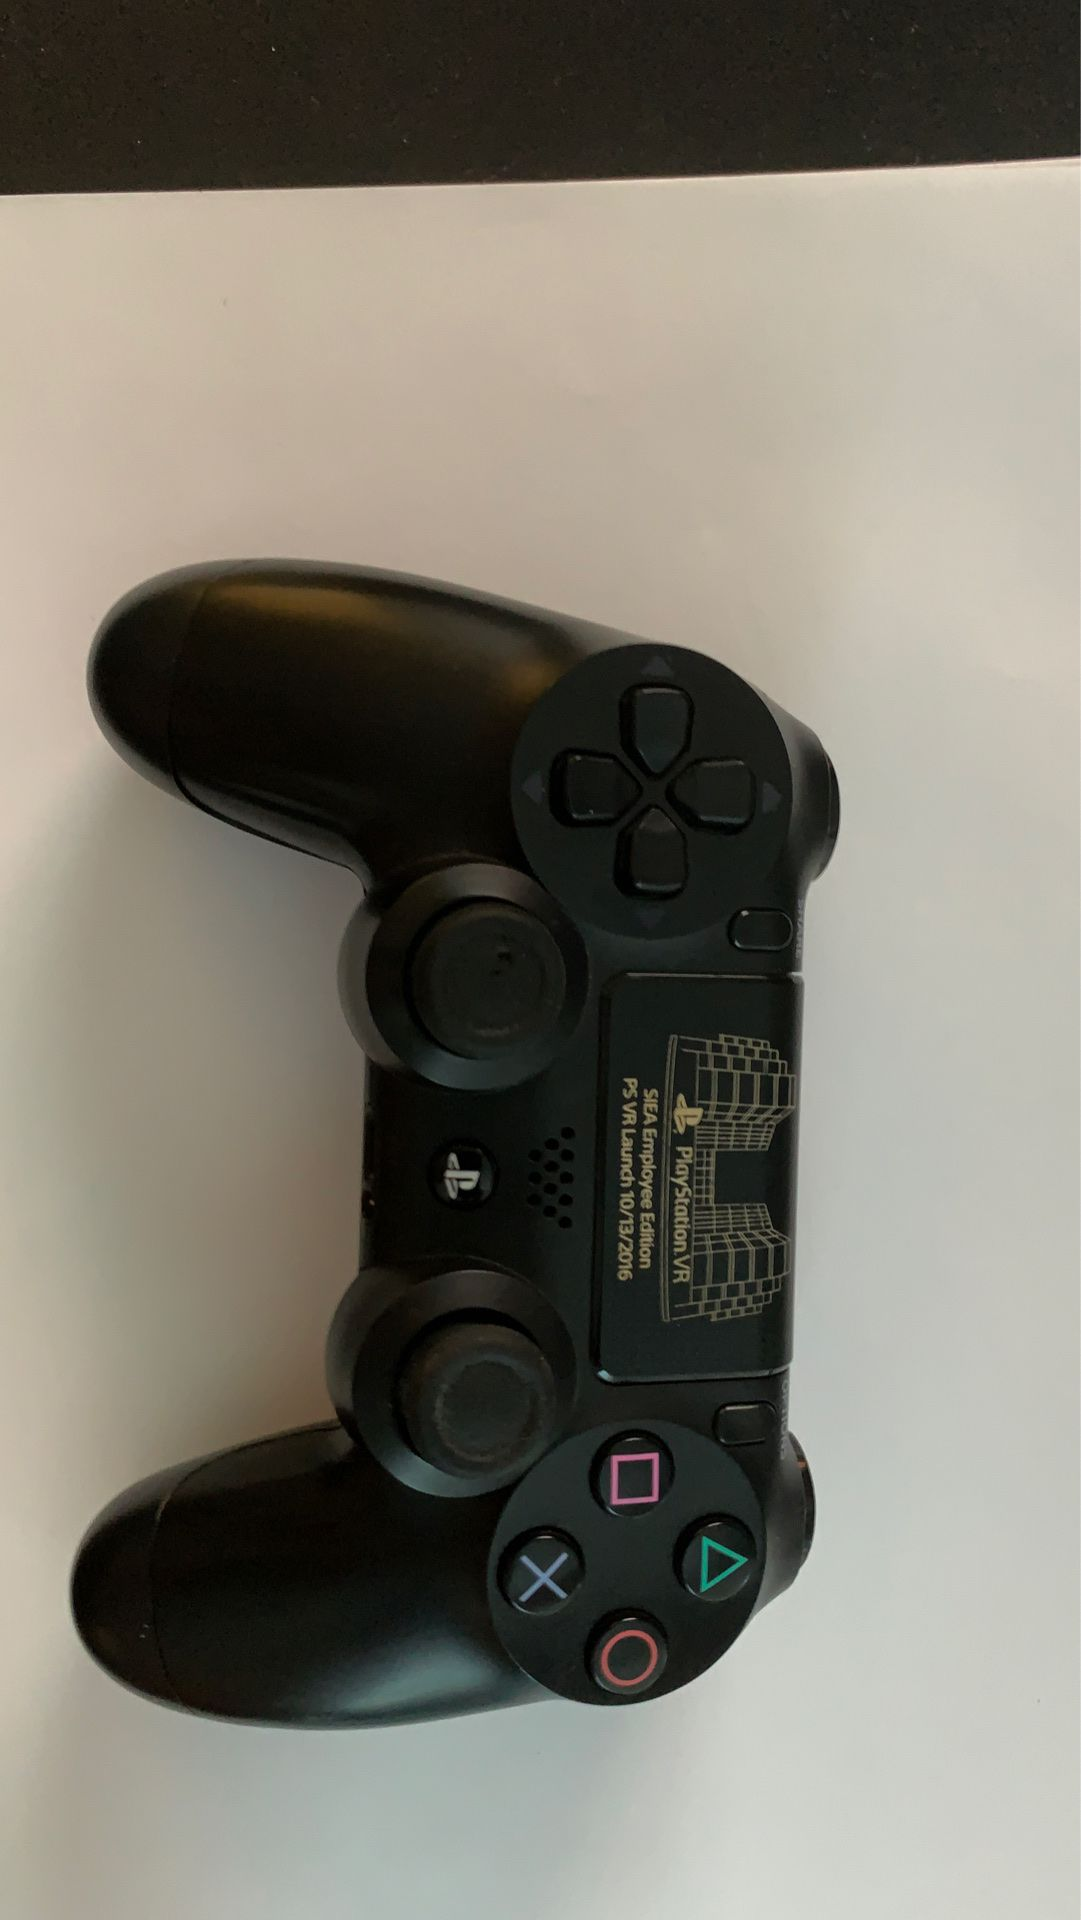 Ps4 controller, Very Rare PlayStation VR SIEA Employee Edition PS VR Launch controller (2013)